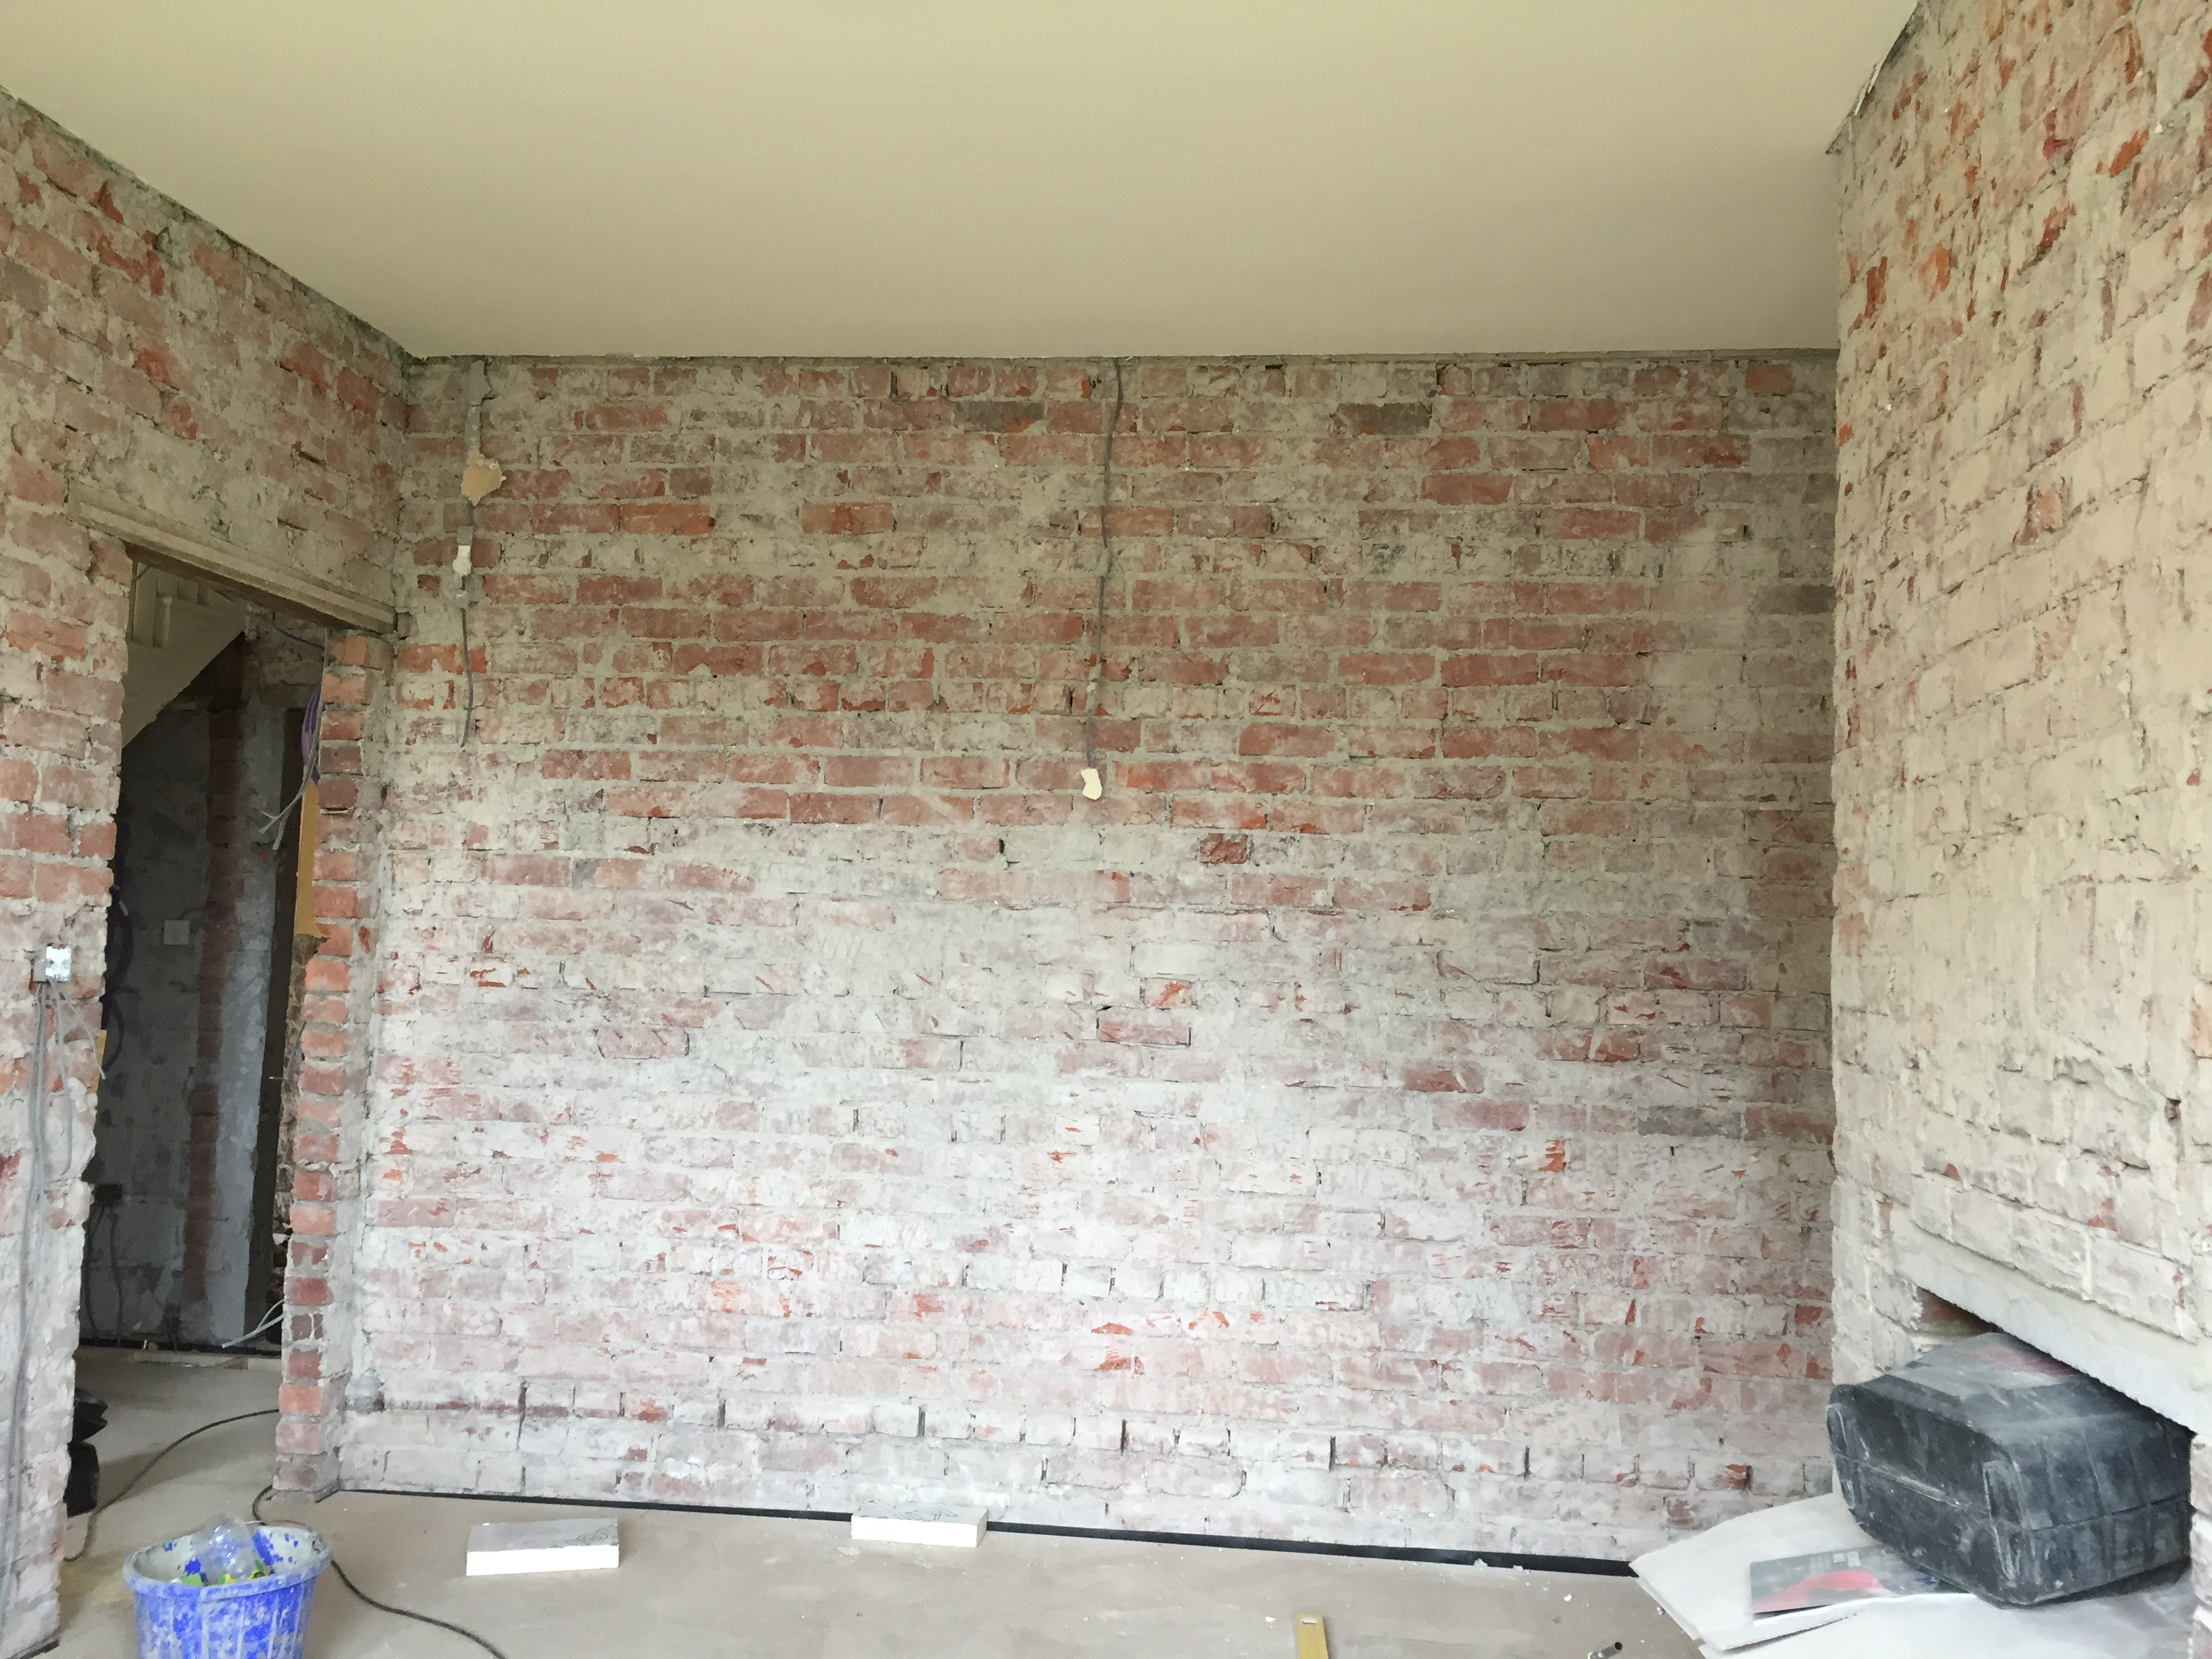 Stripped back to bare brick